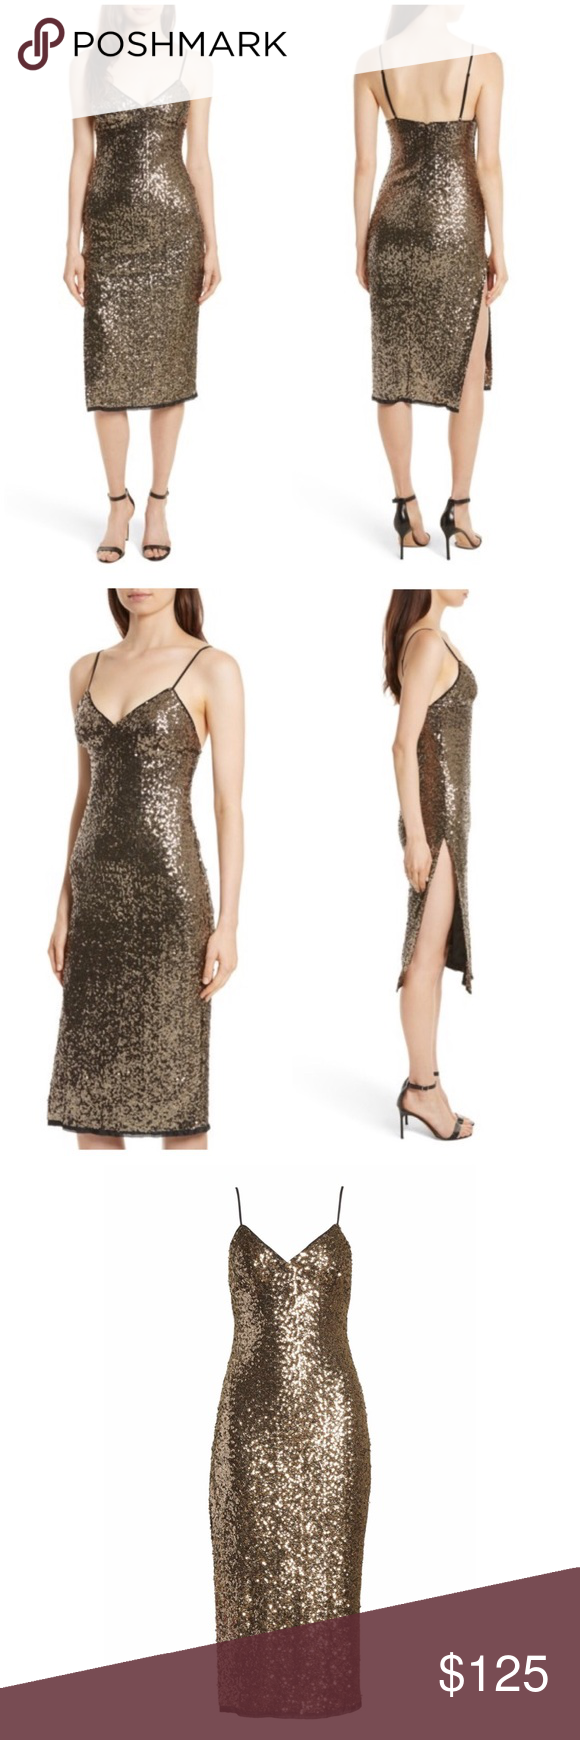 54267bc9 NWOT Milly Alexis Sequin Camisole Dress New Without Tags Milly 'Alexis' Sequin  Camisole Dress. Antique gold color. Fully lined. Side slit. Perfect for the  ...